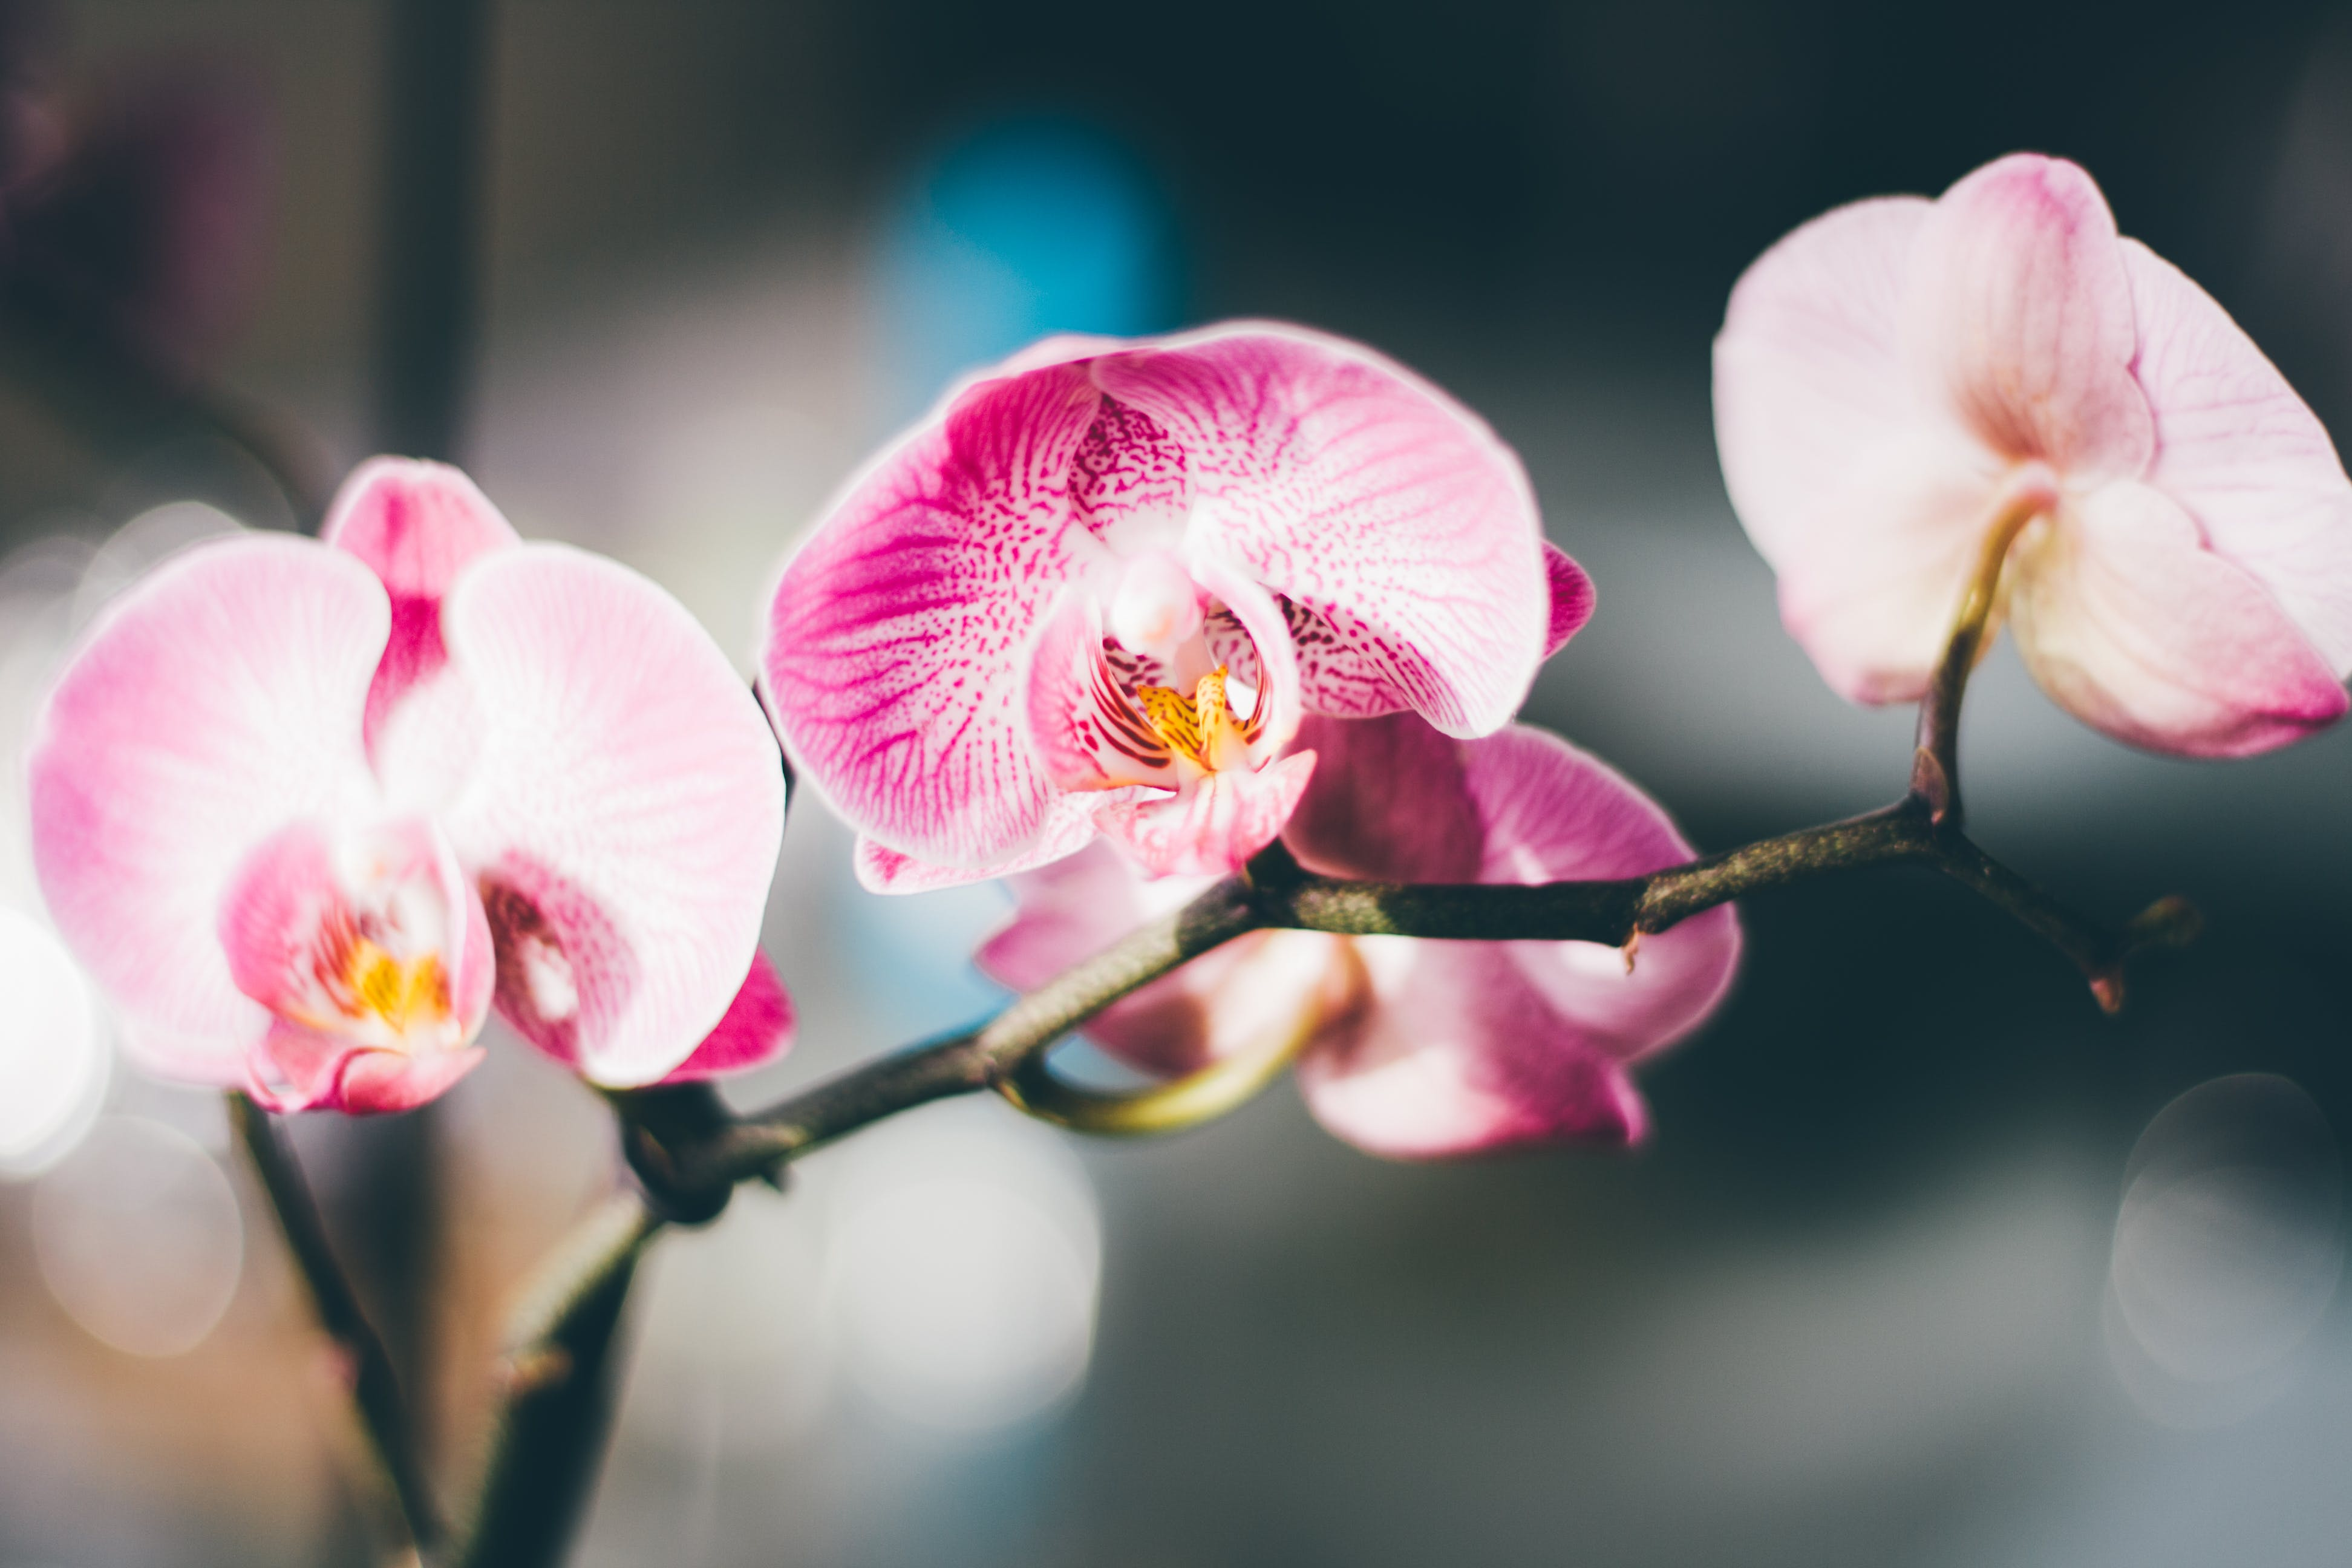 Close-Up Photography of a Pink and White Moth Orchid